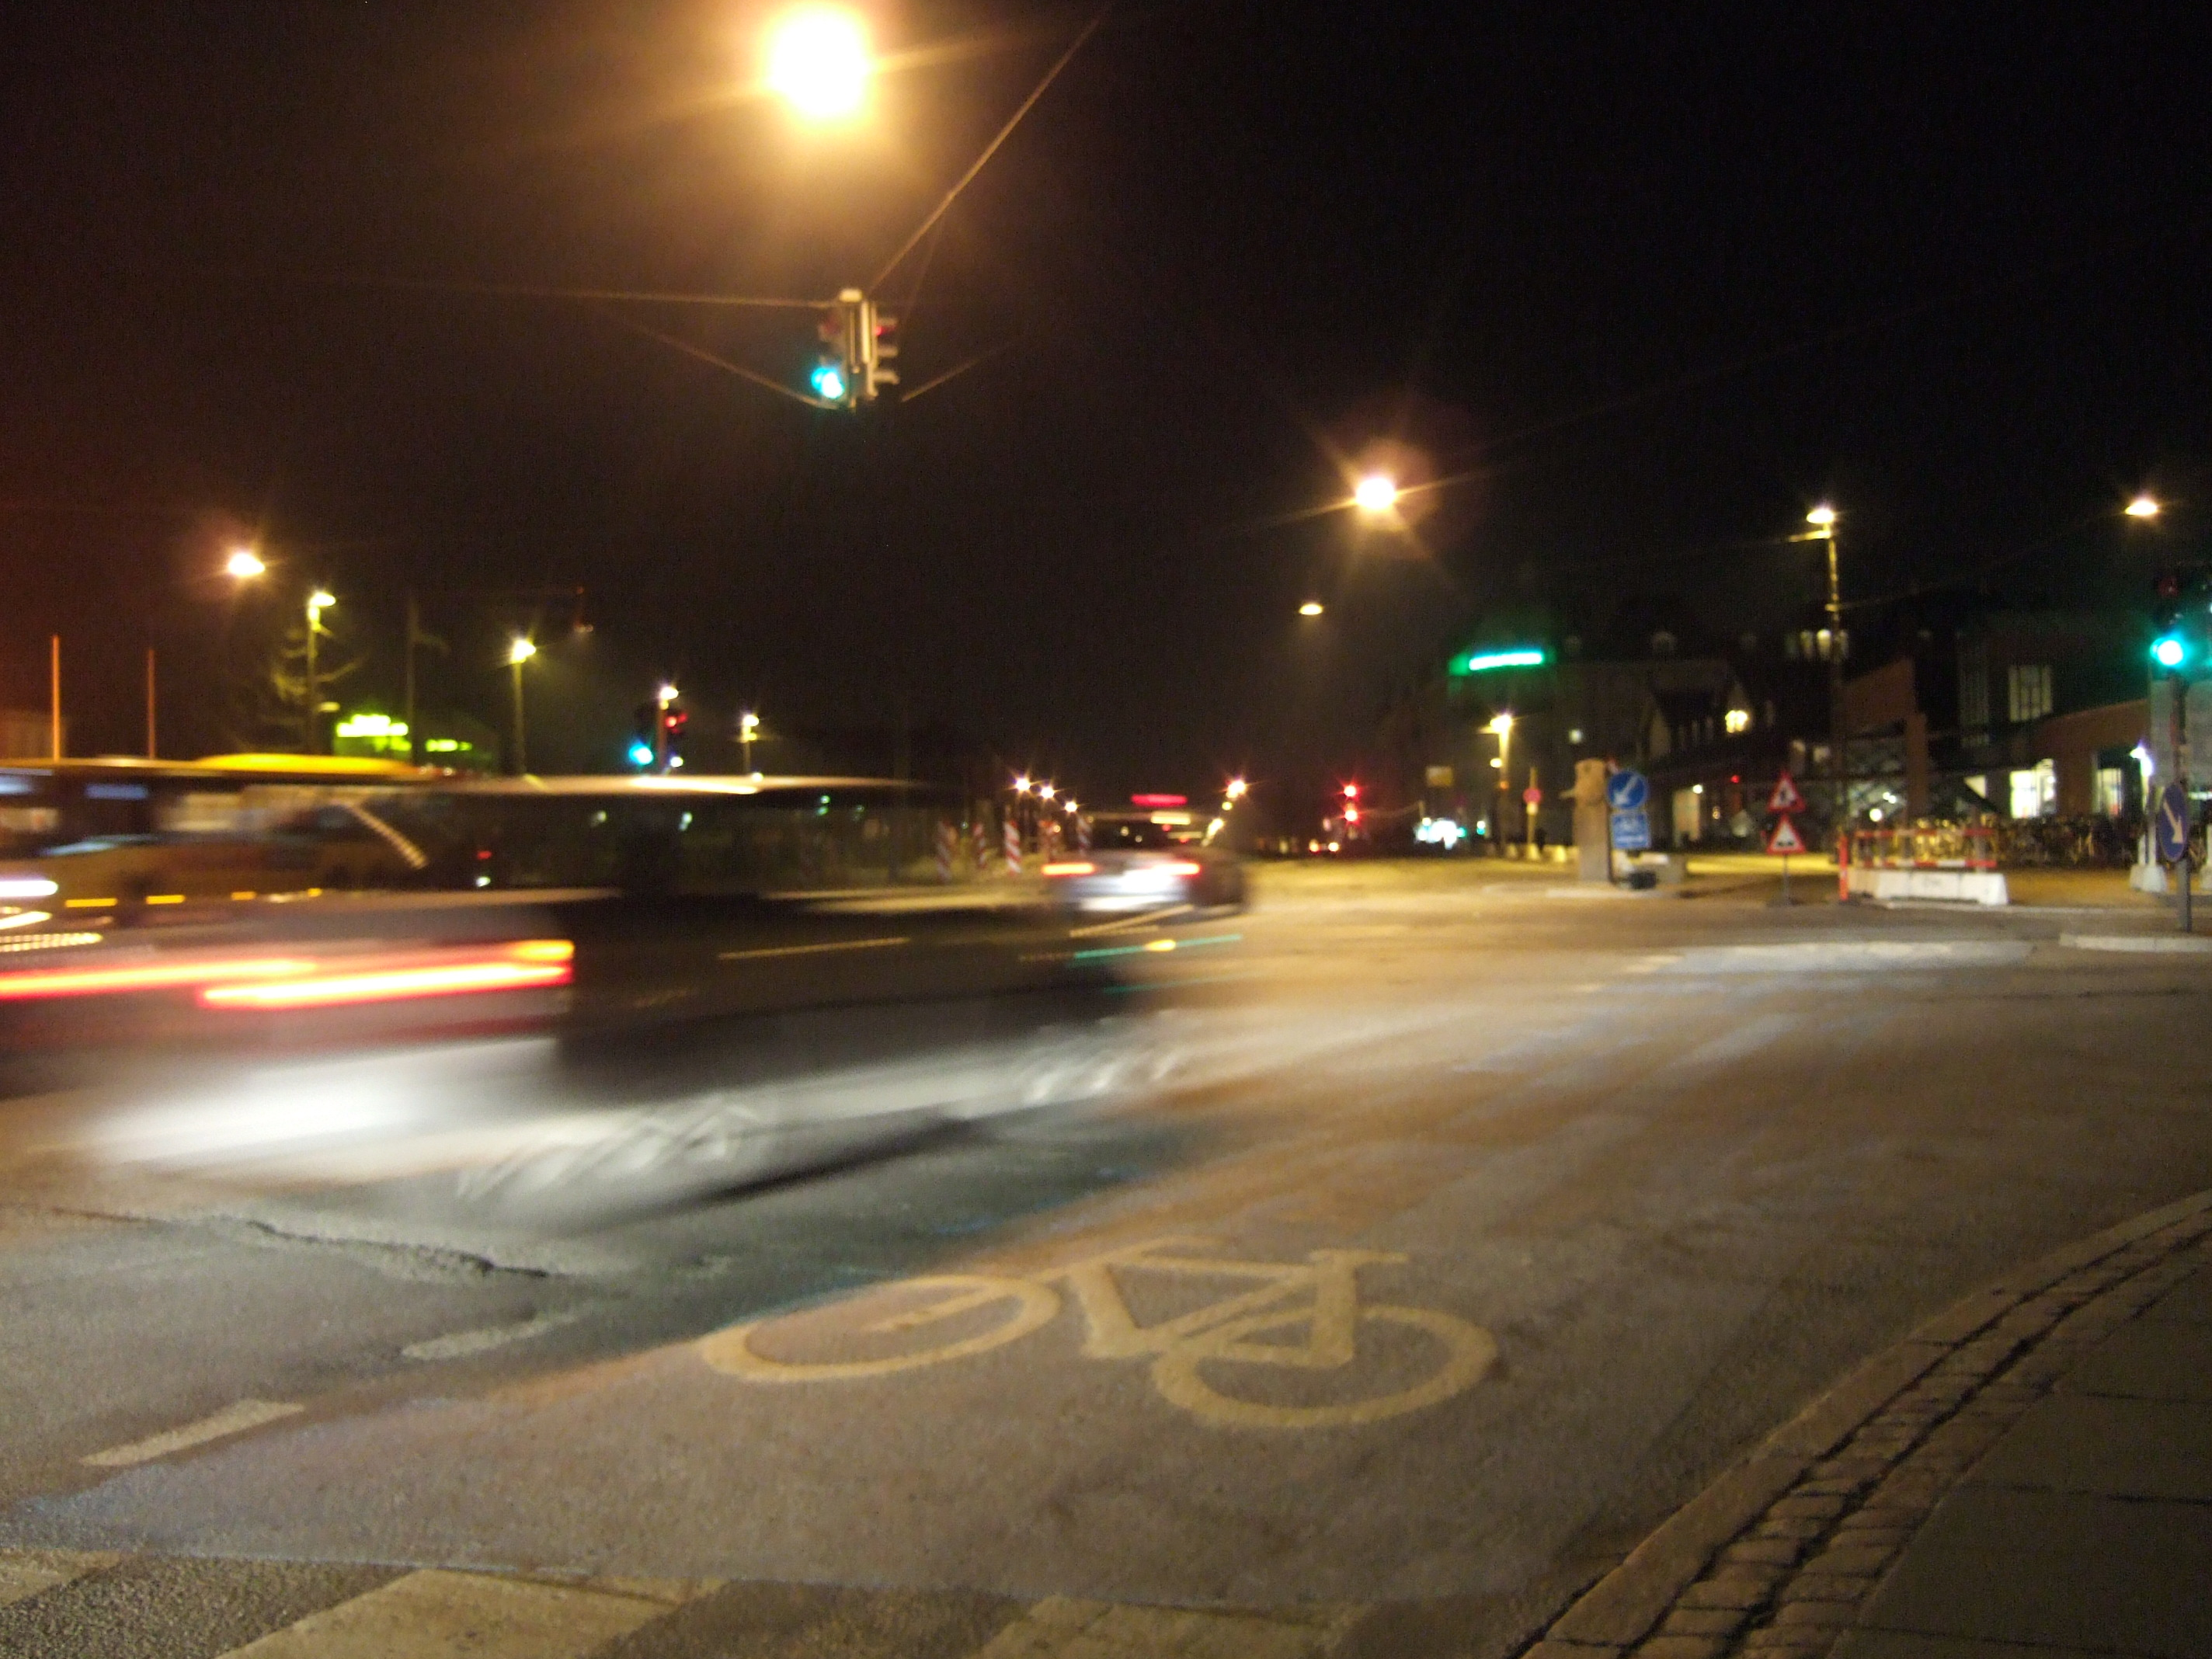 tabus city night bike road blurred